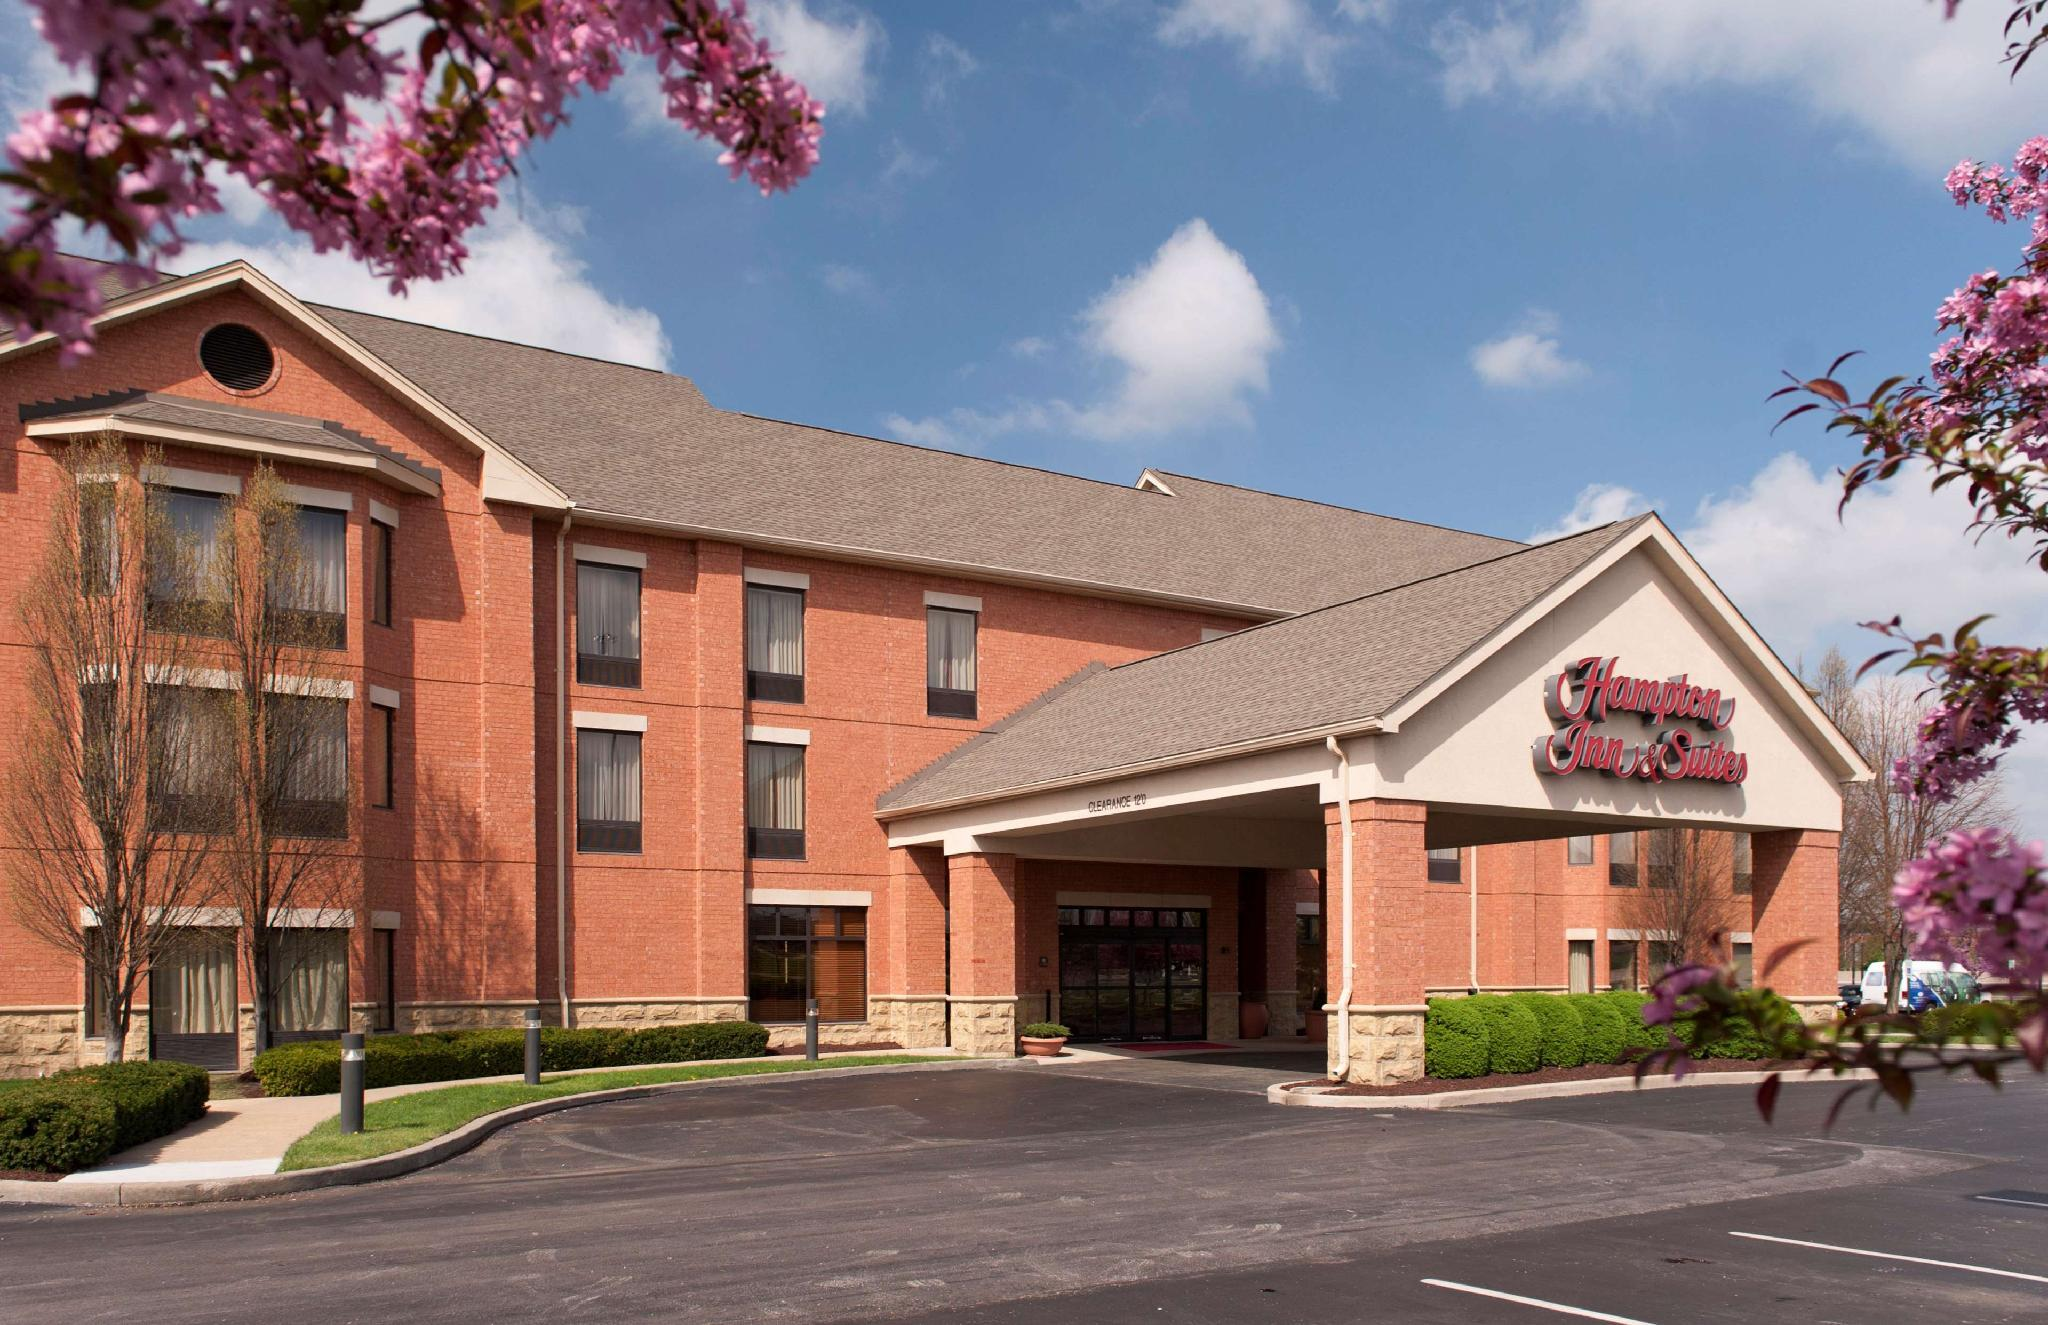 Hampton Inn And Suites St. Louis Chesterfield